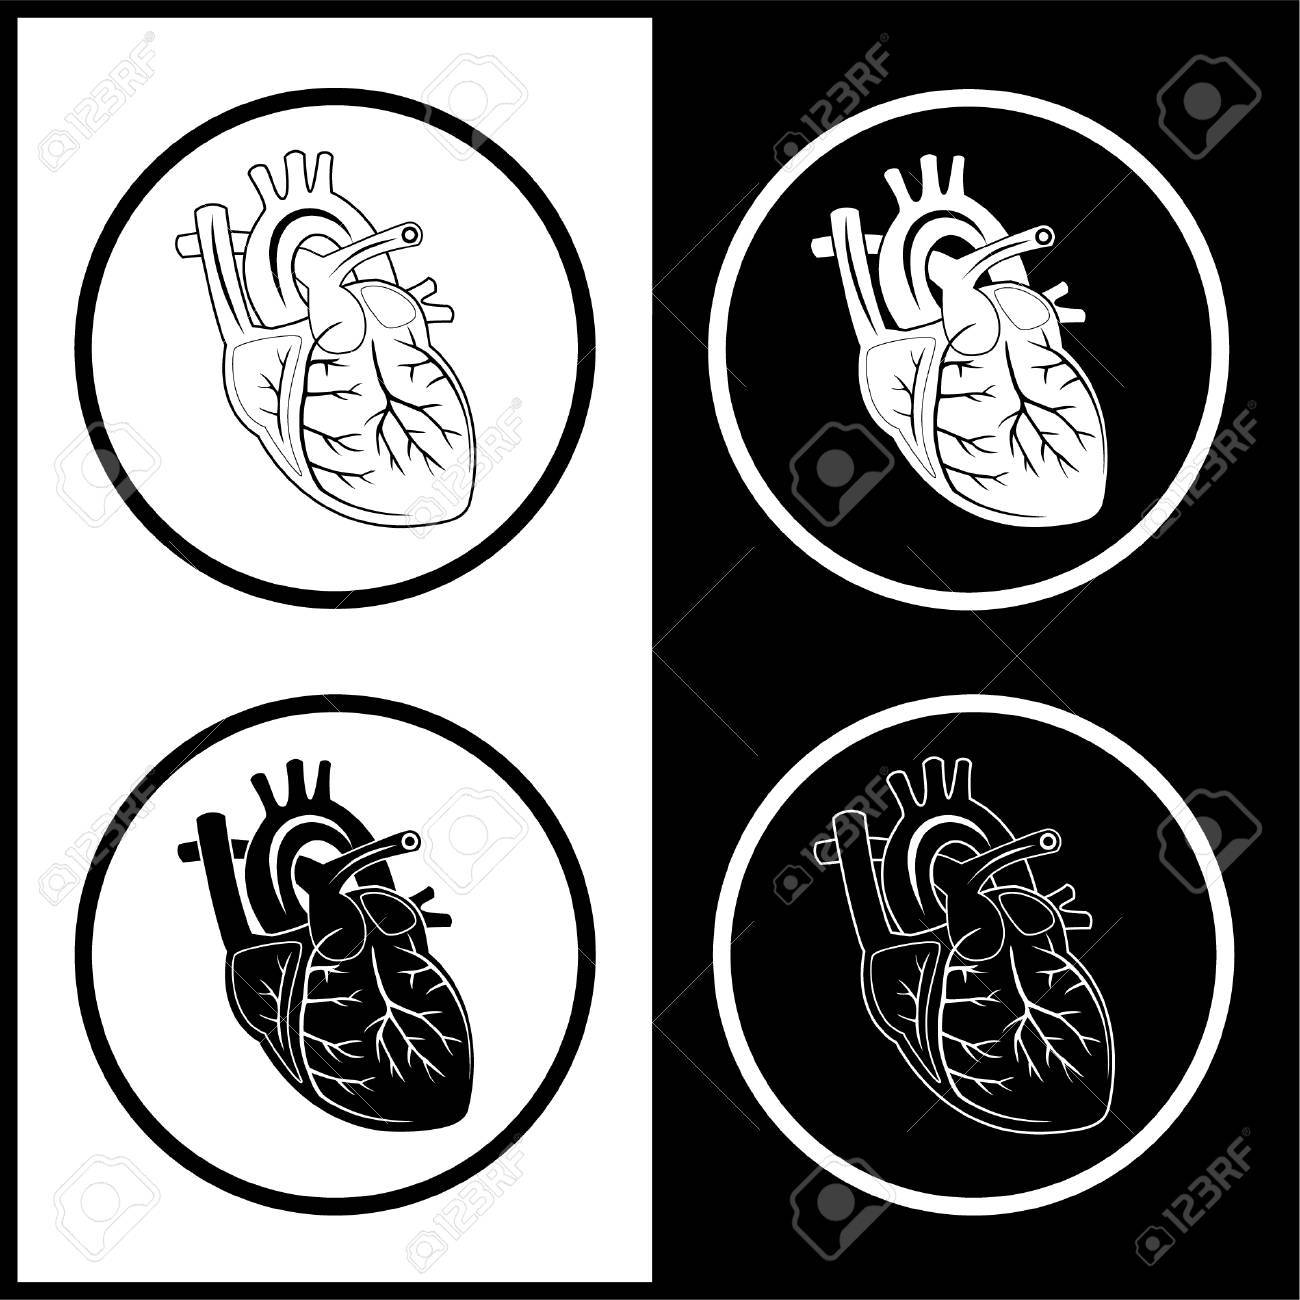 Human Heart Vector Black And White Vector Heart Icons Black And